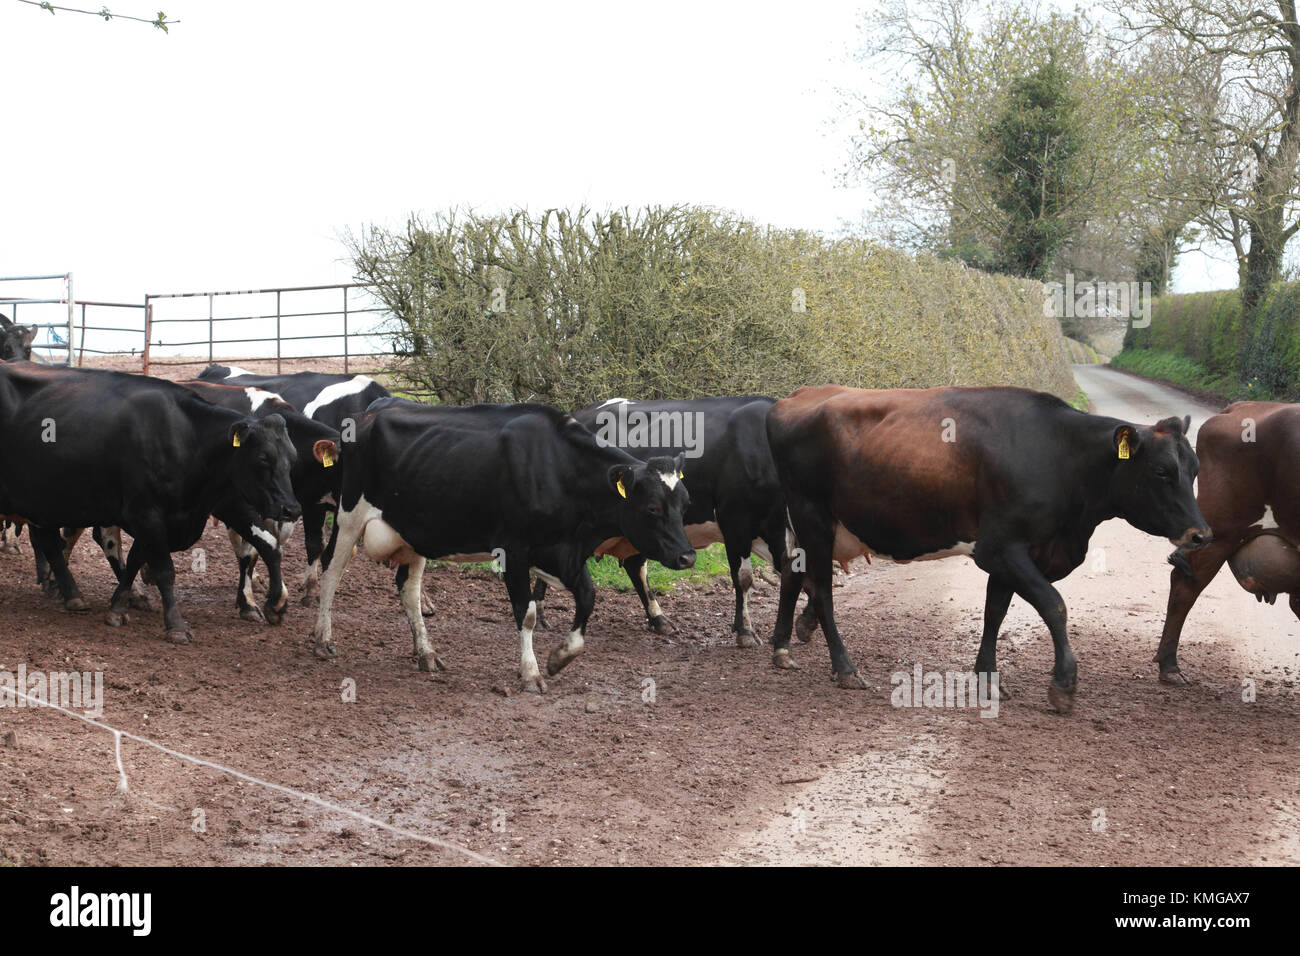 A dairy cow in a herd of cows crossing a country lane in order to be milked - Stock Image